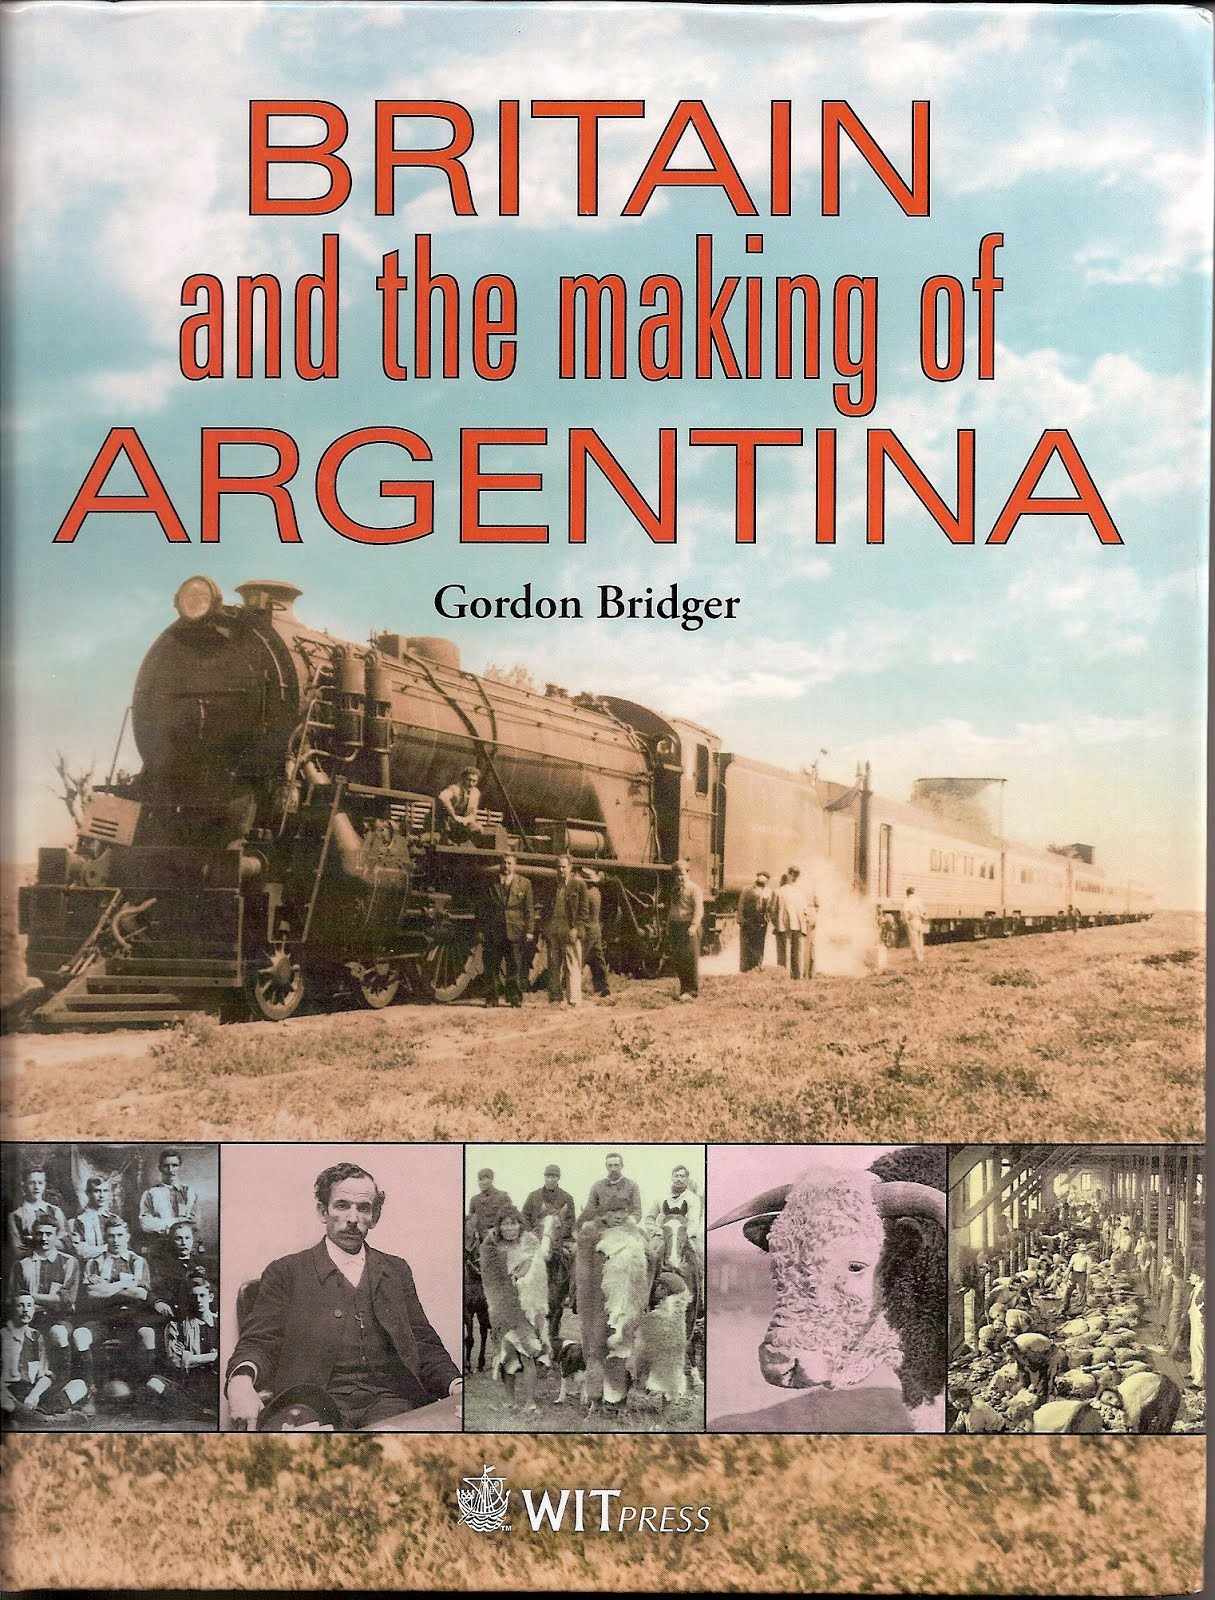 Otro trabajo de Gordon Bridger:............................BRITAIN AND THE MAKING OF ARGENTINA